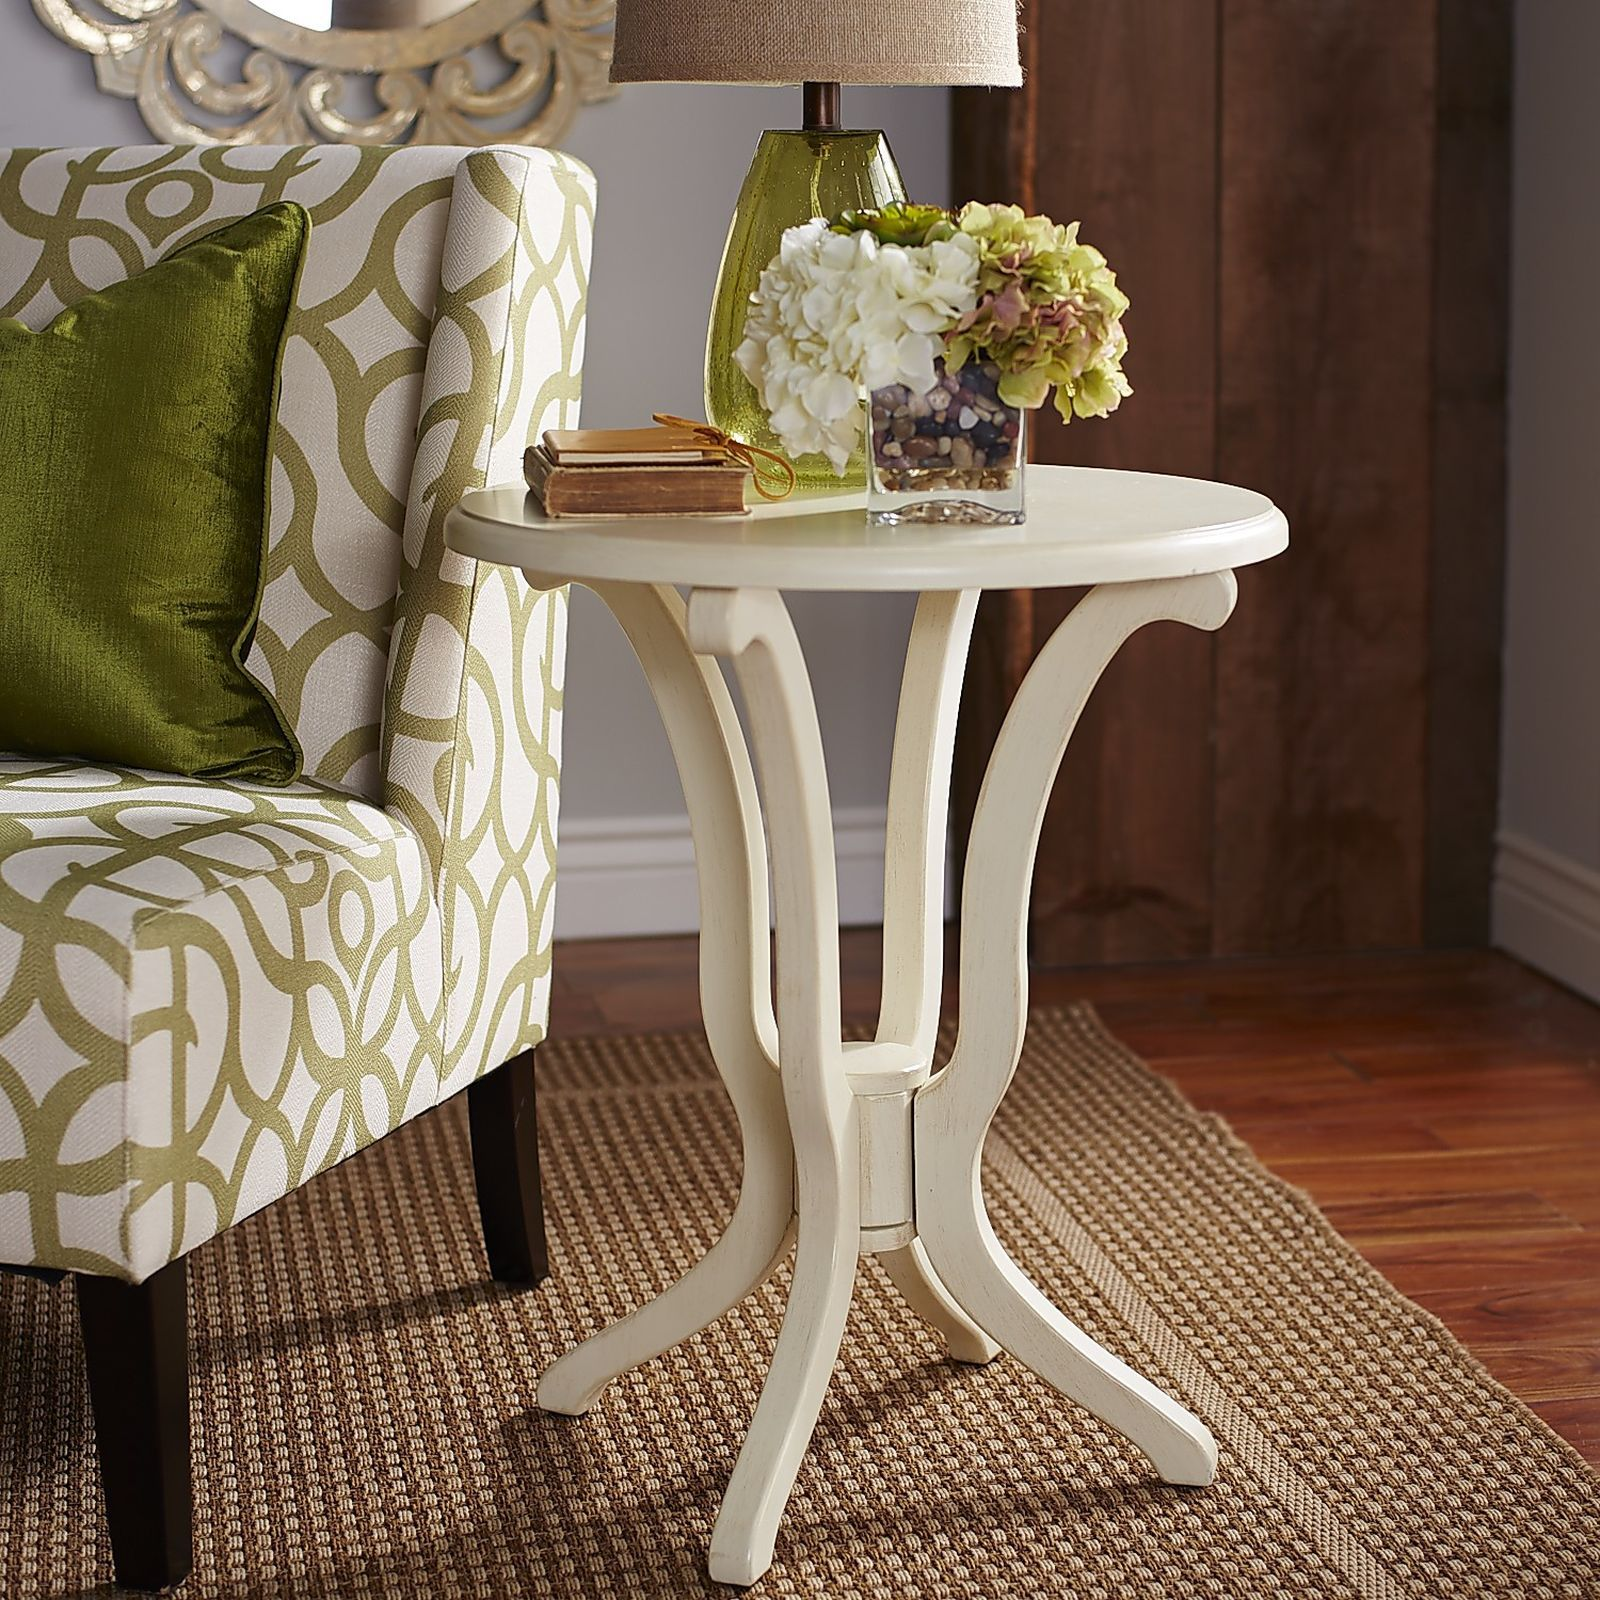 daffodil antique white accent table daffodils room and living rooms console lamps rustic battery for home bar height patio design ideas pier one shower curtains target threshold